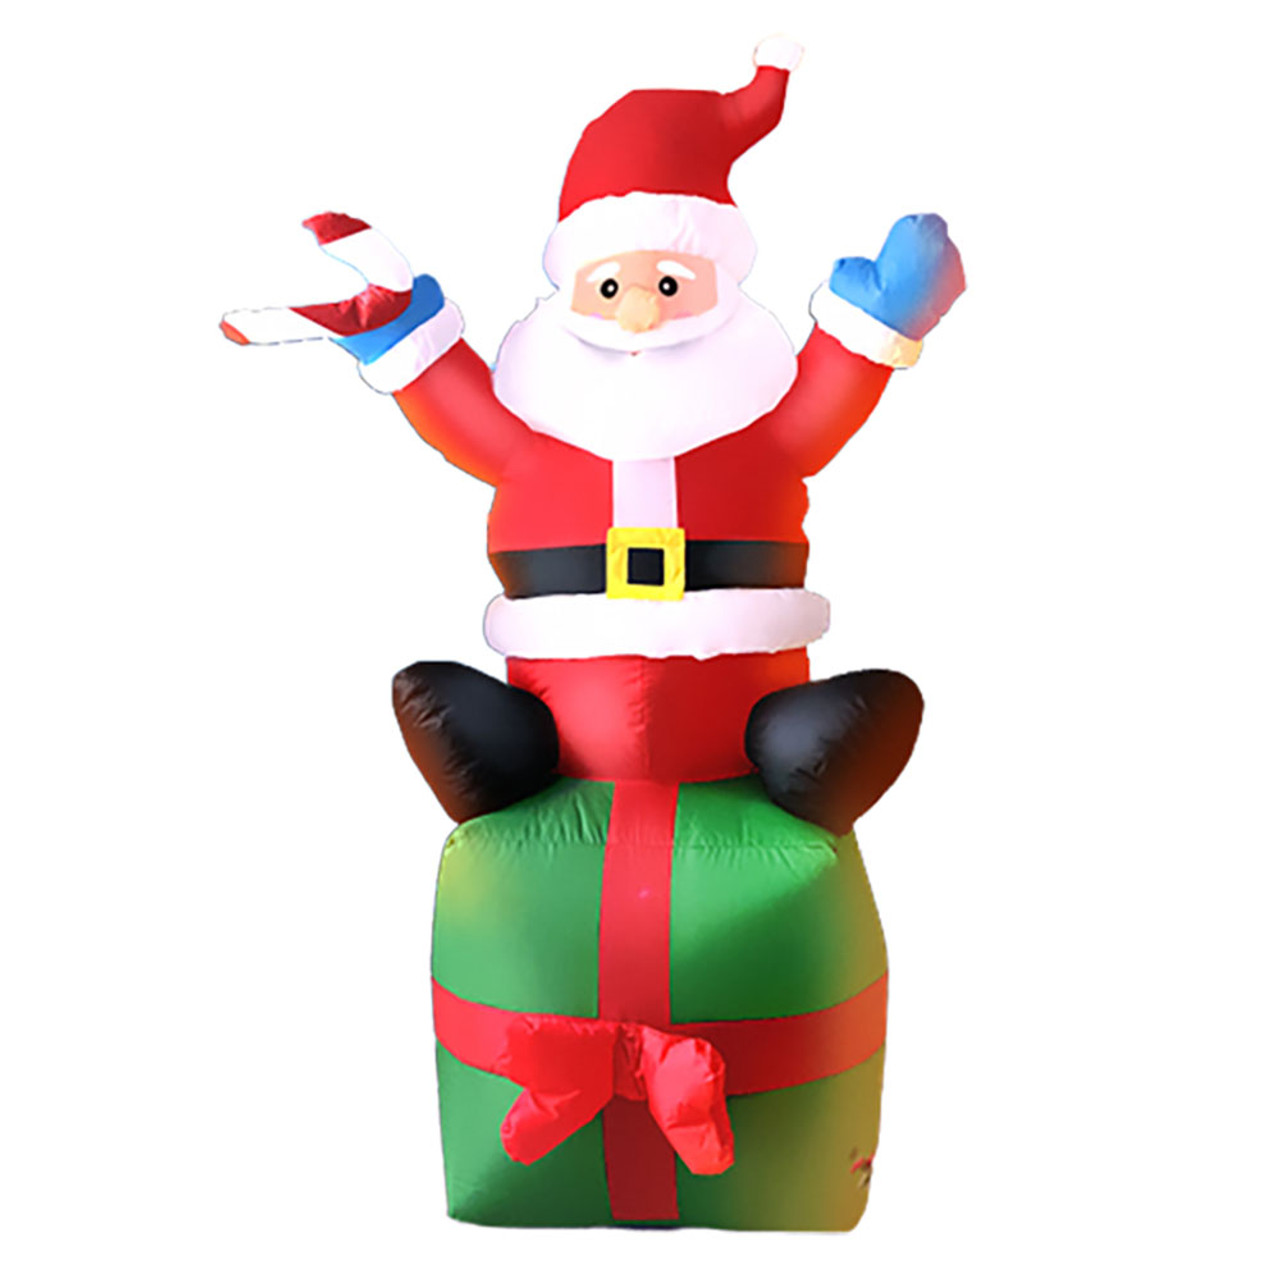 6-Foot Inflatable Santa Claus on Christmas Present! .99 (REG .99) + Free Shipping at Until Gone!